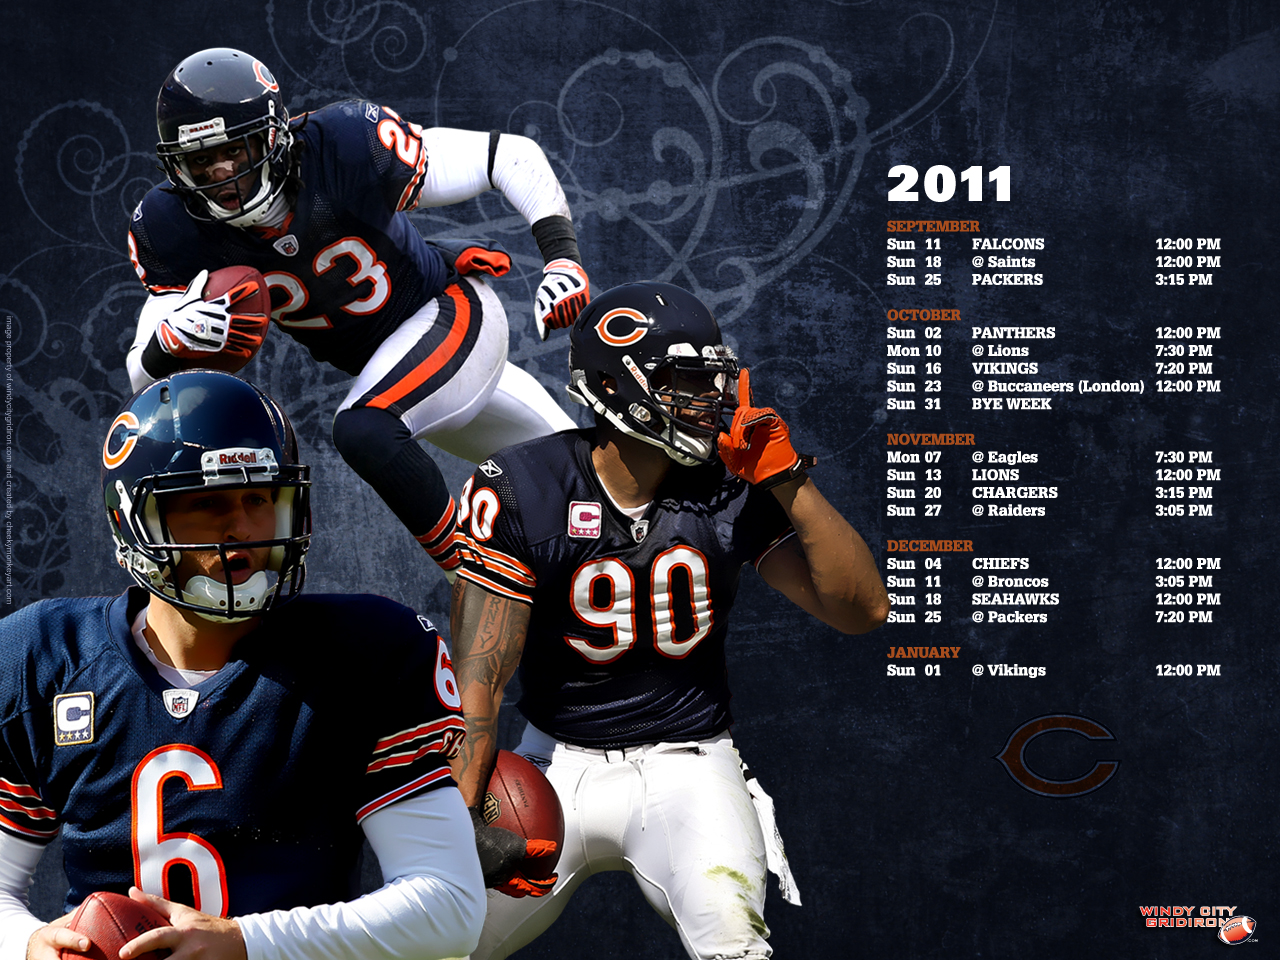 Chicago Bears wallpaper HD desktop wallpaper Chicago Bears 1280x960